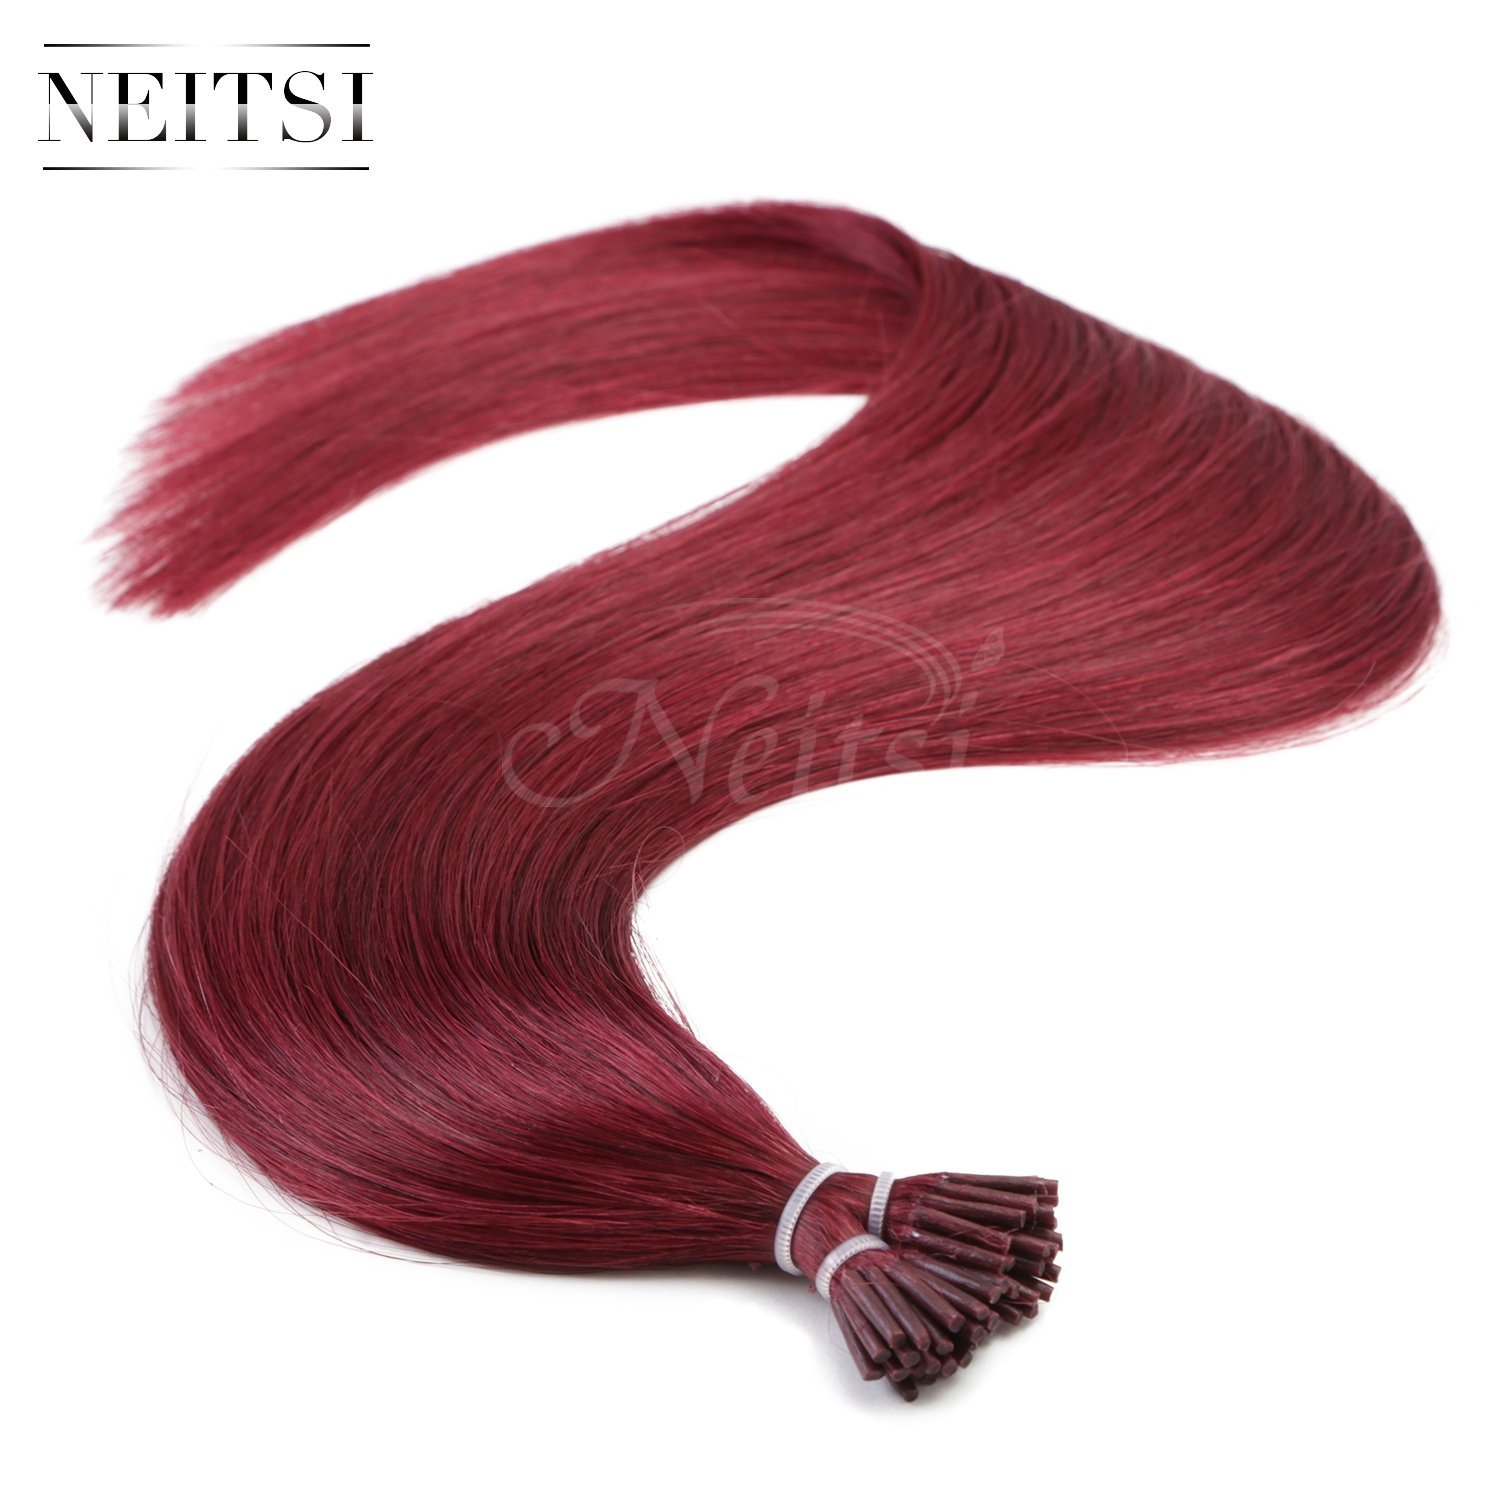 "Neitsi 20"" 1g/s 25s/lot Fusion Glue I Tip/Stick Remy Human Hair Extensions (530#)"